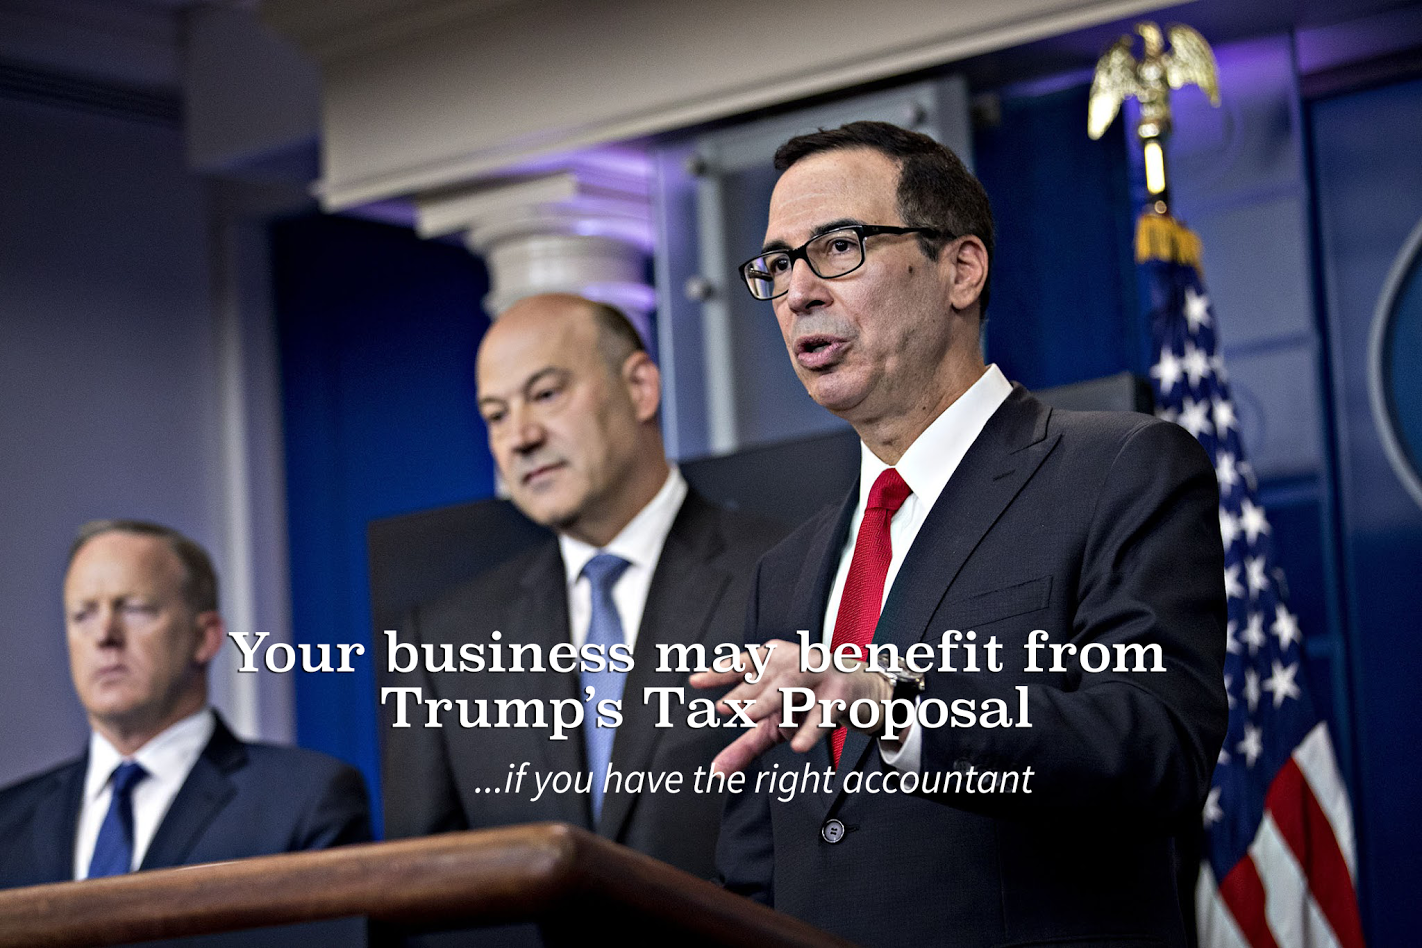 Not All Businesses Benefit the Same Under Trump's Tax Proposal